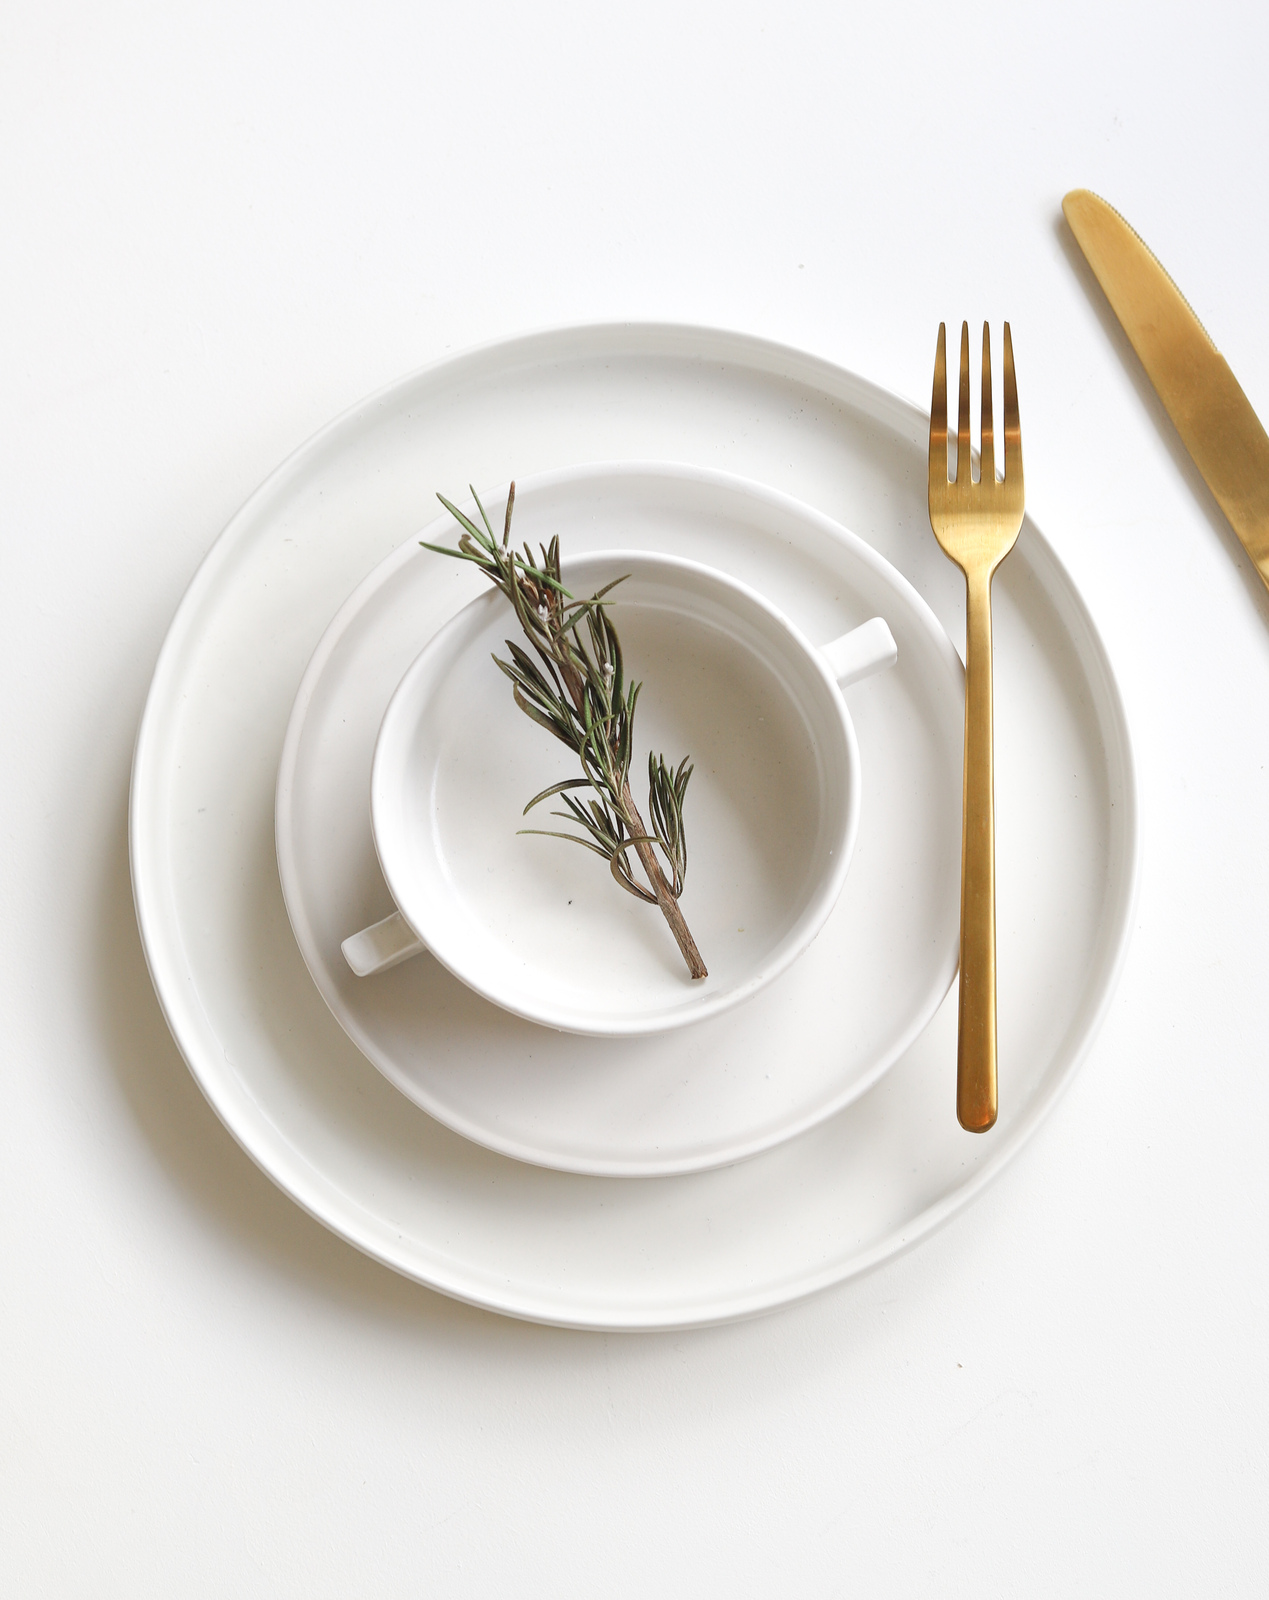 Combiantion of Gold Fork and Knife and White Ceramic Plates